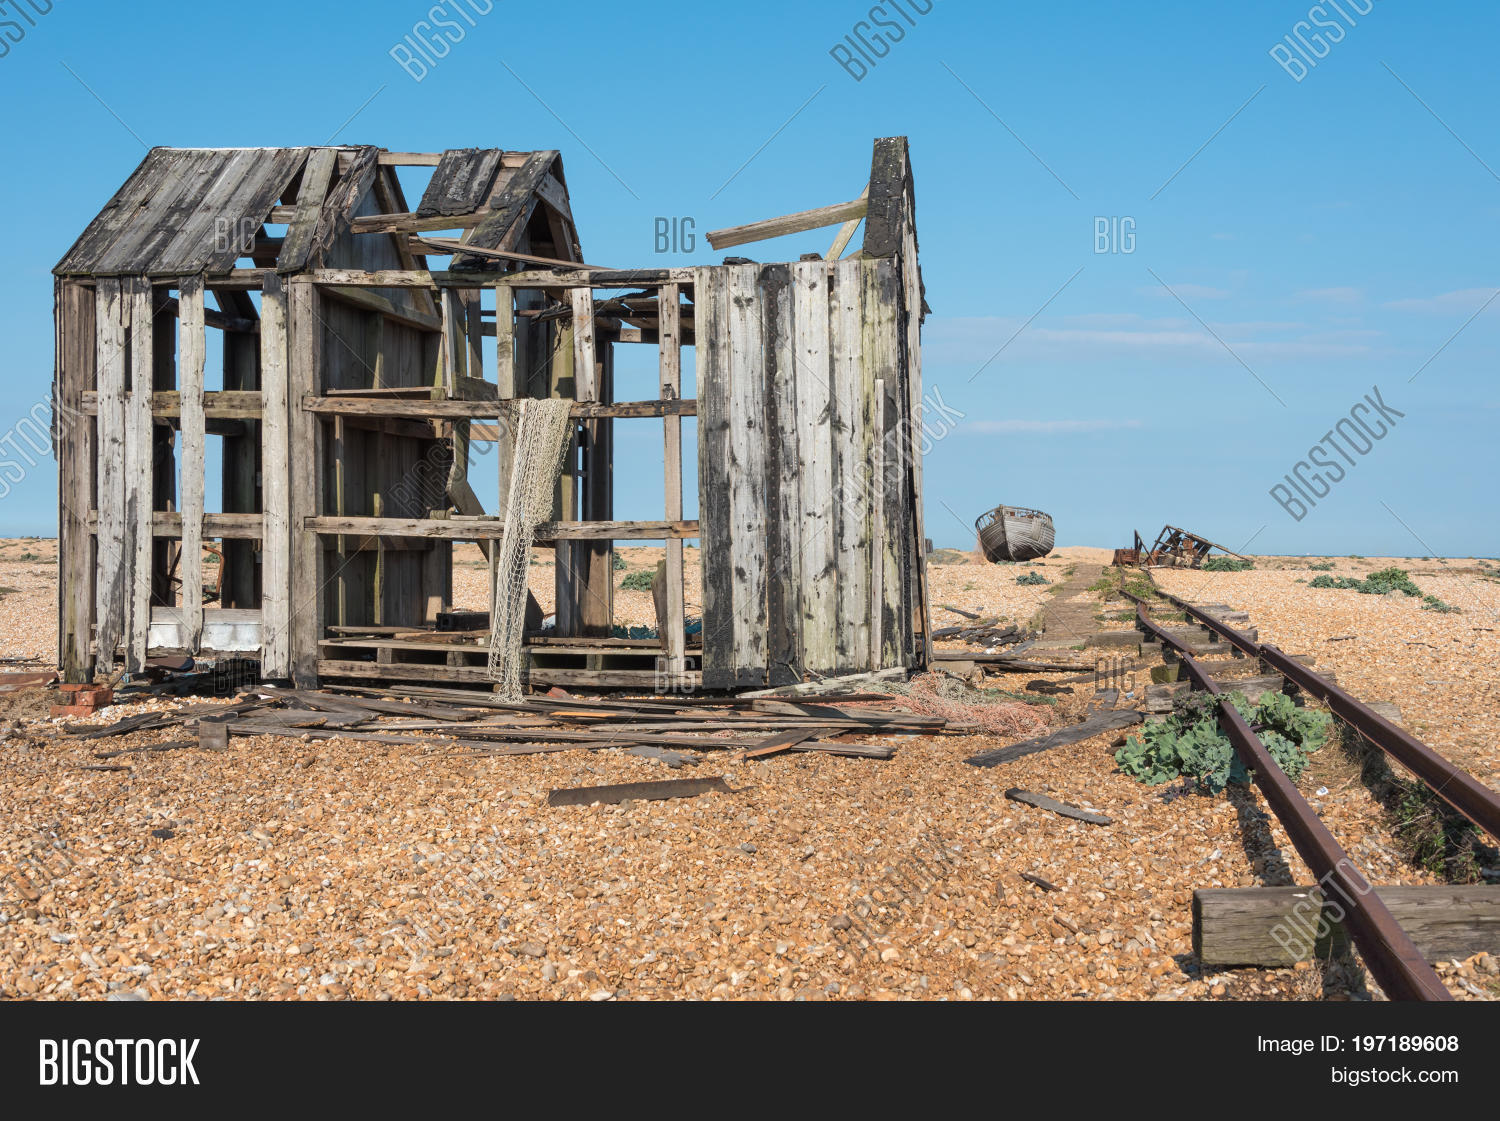 Old Fishing Boat Shed Image Photo Free Trial Bigstock